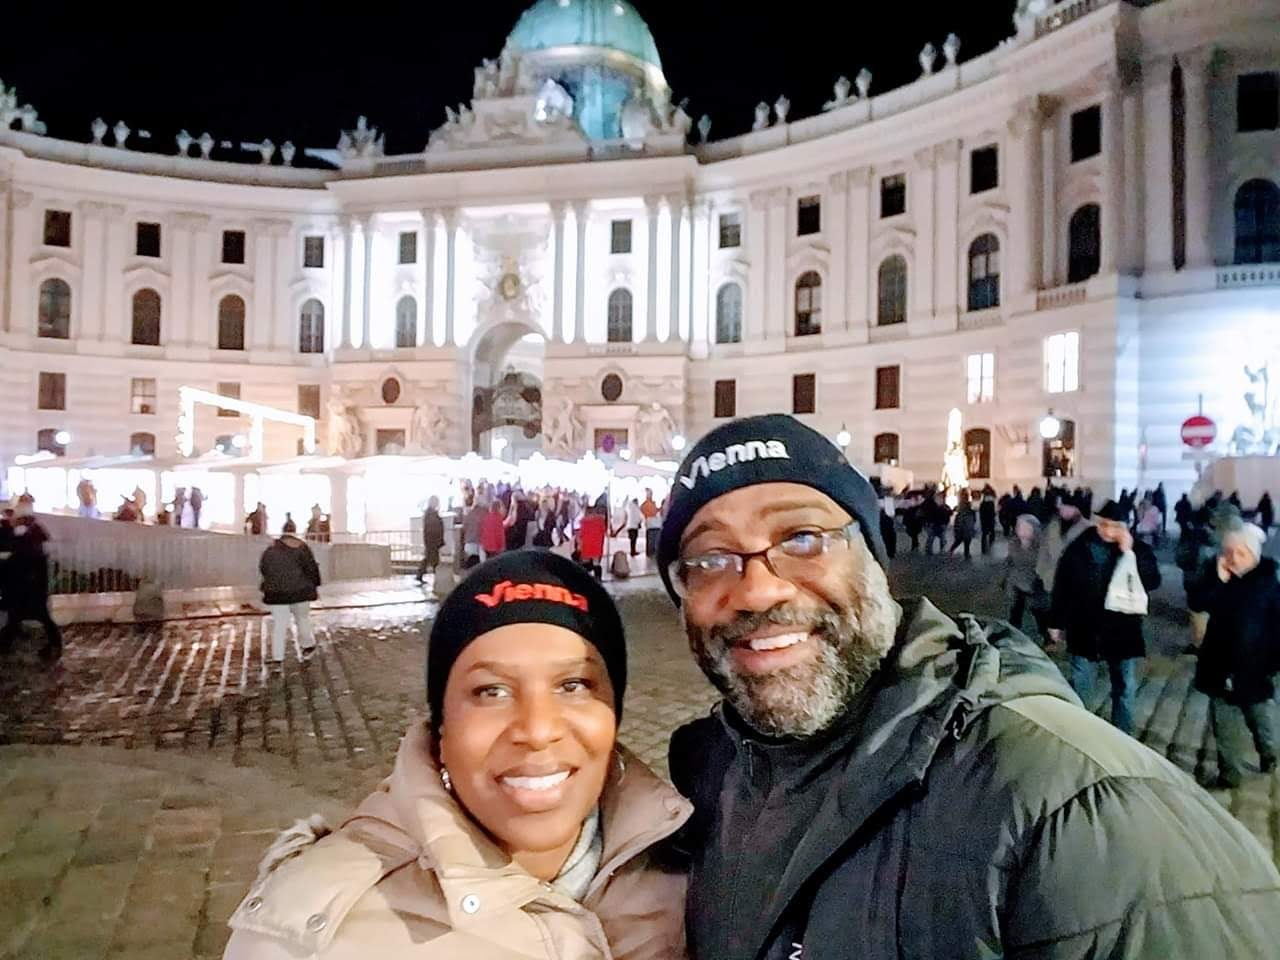 Quisha & Rasheid: a trip to Europe - DECEMBER 2018This was our first time traveling to Europe, and more importantly, my first time on a plane for so many hours. I started out trying to plan the trip on my own and immediately became overwhelmed. I contacted Mary, and she put me at ease. Fear and worry turned to joy and excitement. Every step of the way, Living Big helped us design the perfect trip for us. With Mary and Bailey's help, we traveled seamlessly through four cities in 3 weeks. They provided us a detailed itinerary, which gave us the comfort and confidence we needed to maneuver in each new place. Thank you Mary and Bailey!! You are absolute travel gurus!